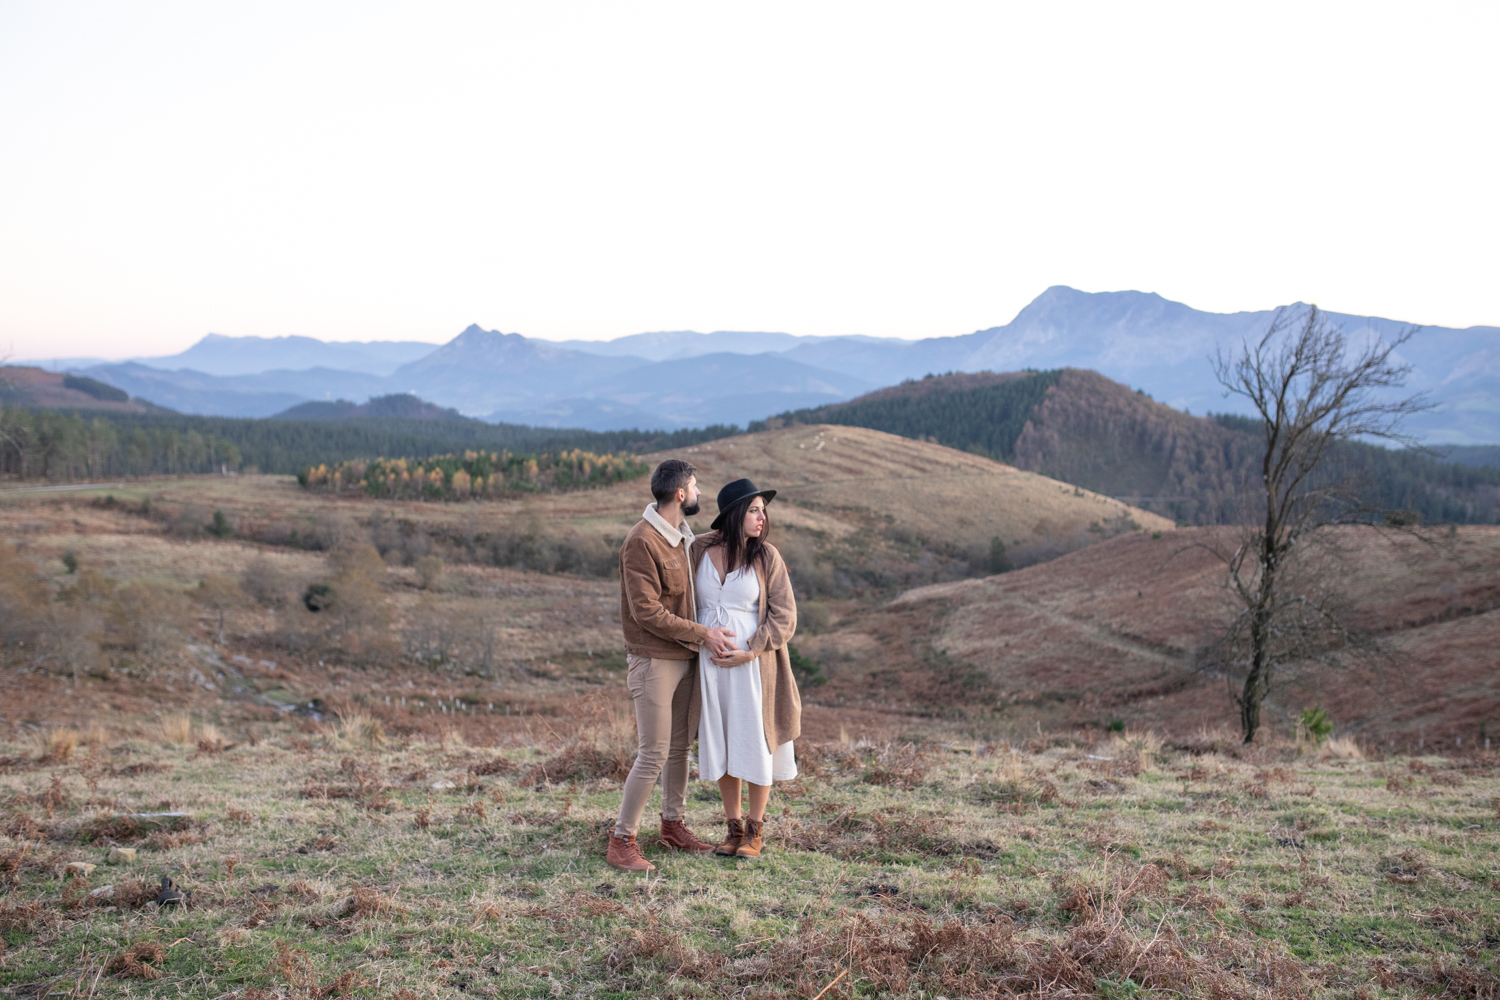 An unedited photo of a man and a pregnant woman who stand on a small hill and look in the distance.